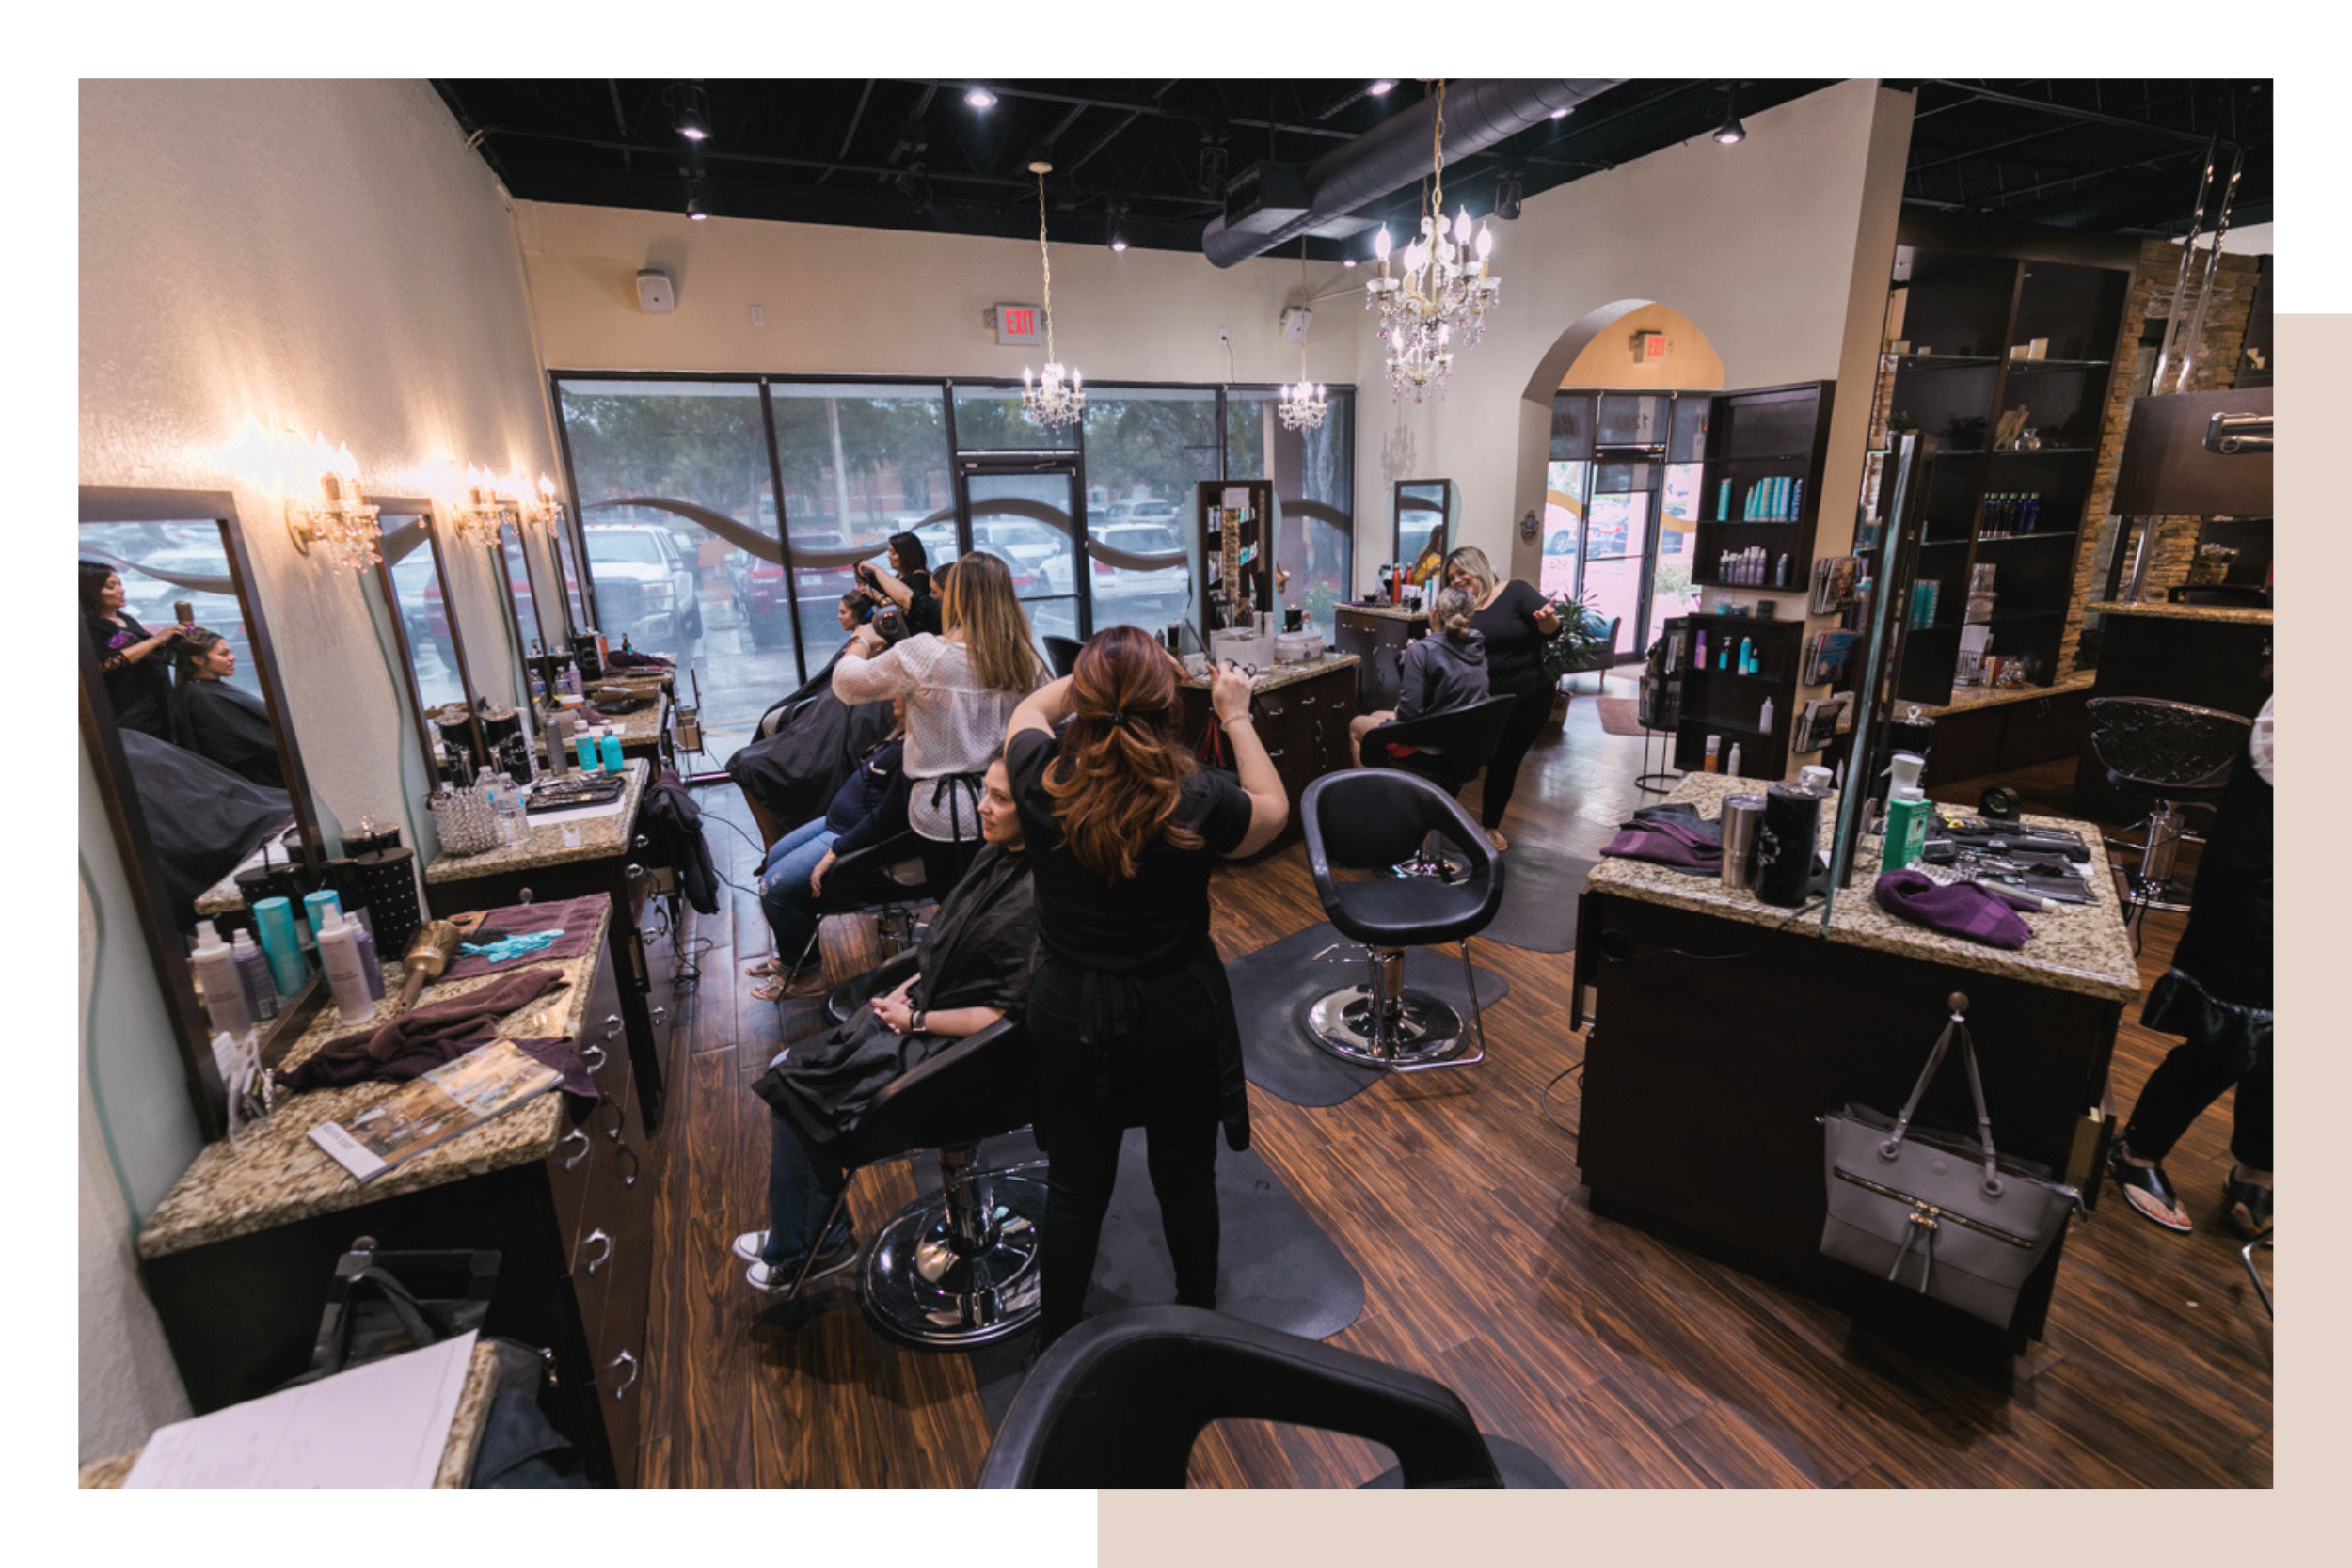 Unique Features - At Blown Away Hair Salon, we have gone to great lengths to ensure clients experience a comfortable and inviting salon environment. You will immediately notice our unique salon features including our premium product lines, ventilated treatment rooms, and state of the art color bar.